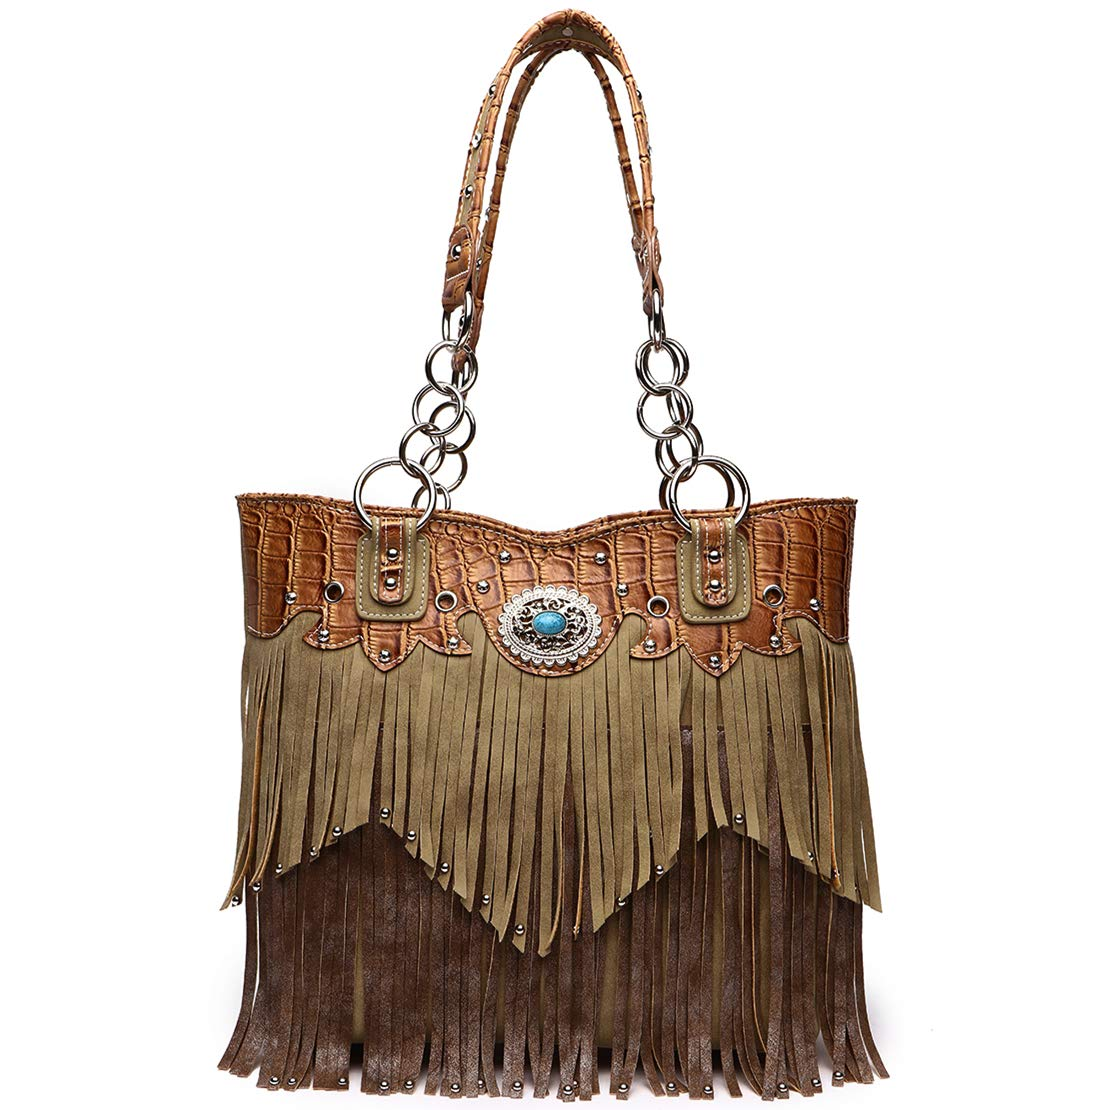 Western Style Fringe Handbag Concealed Carry Purse Country Large Tote Conchos Purse Women Shoulder Bag (Tan)